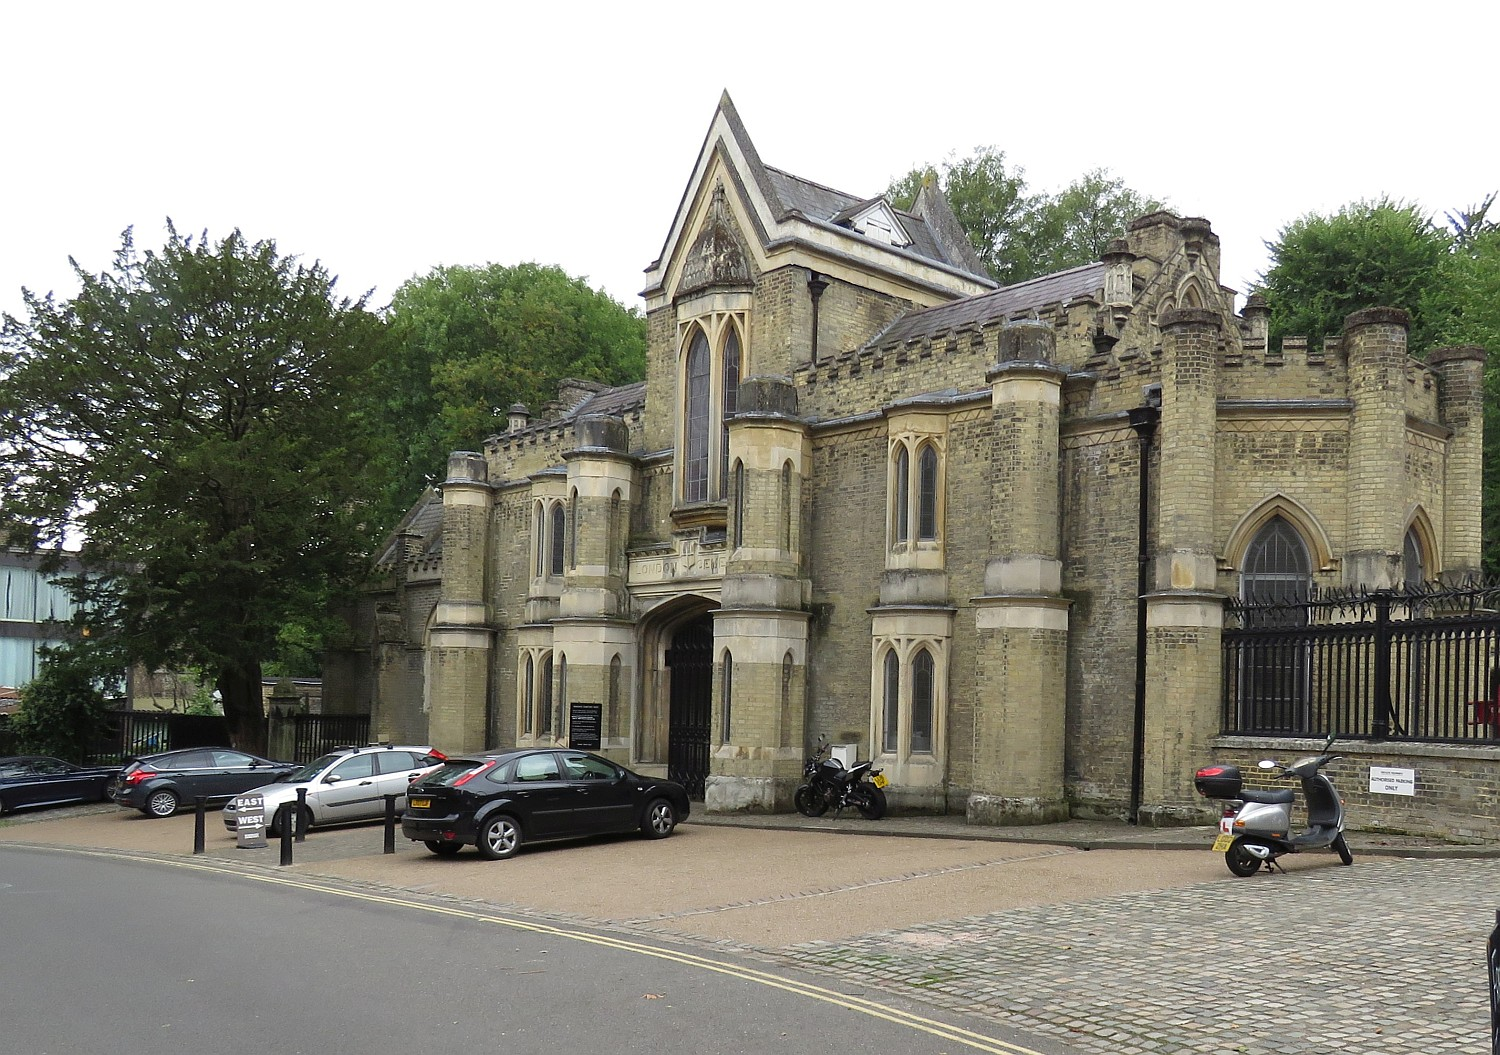 Entrance to Highgate Cemetery